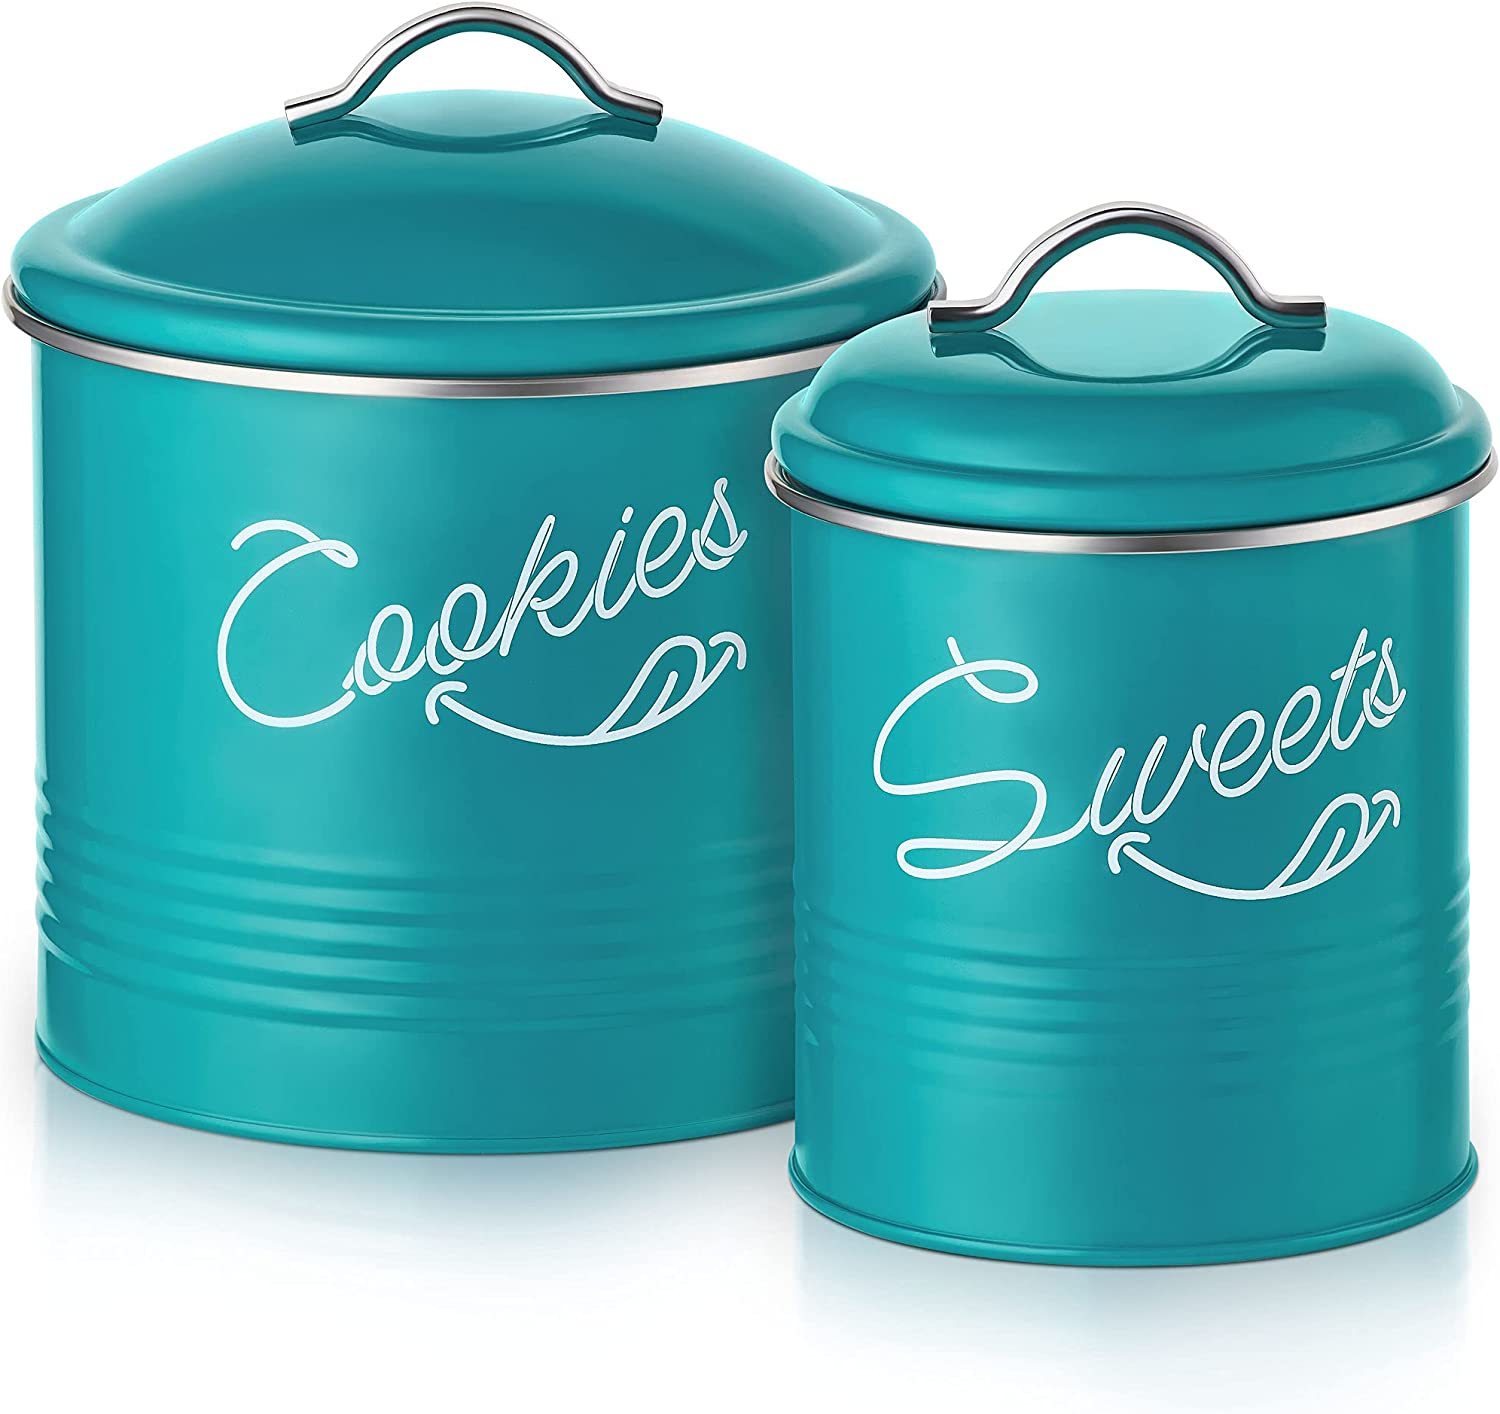 Candy Jar & Cookie Jar for Kitchen counter   Farmhouse Kitchen Jars for Storage of Your Favorite Treats   Large & Medium Canisters Set of Two Cookie & Candy Jars with Lids   Airtight Jar by Nirgals